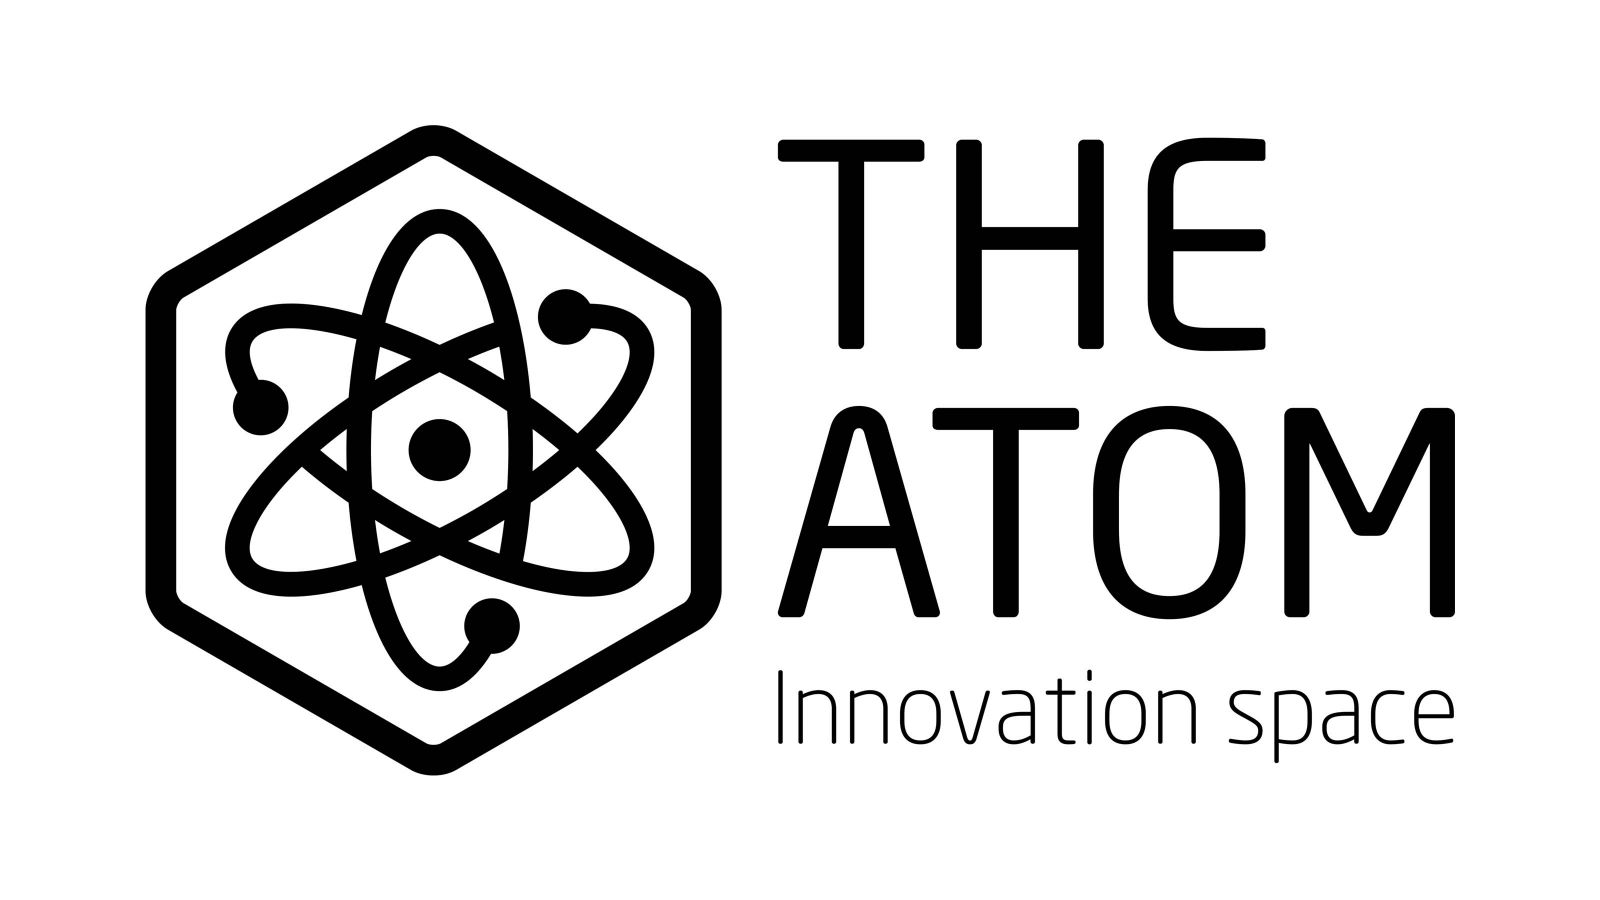 The Atom—Te Kahu o Te Ao innovation space logo